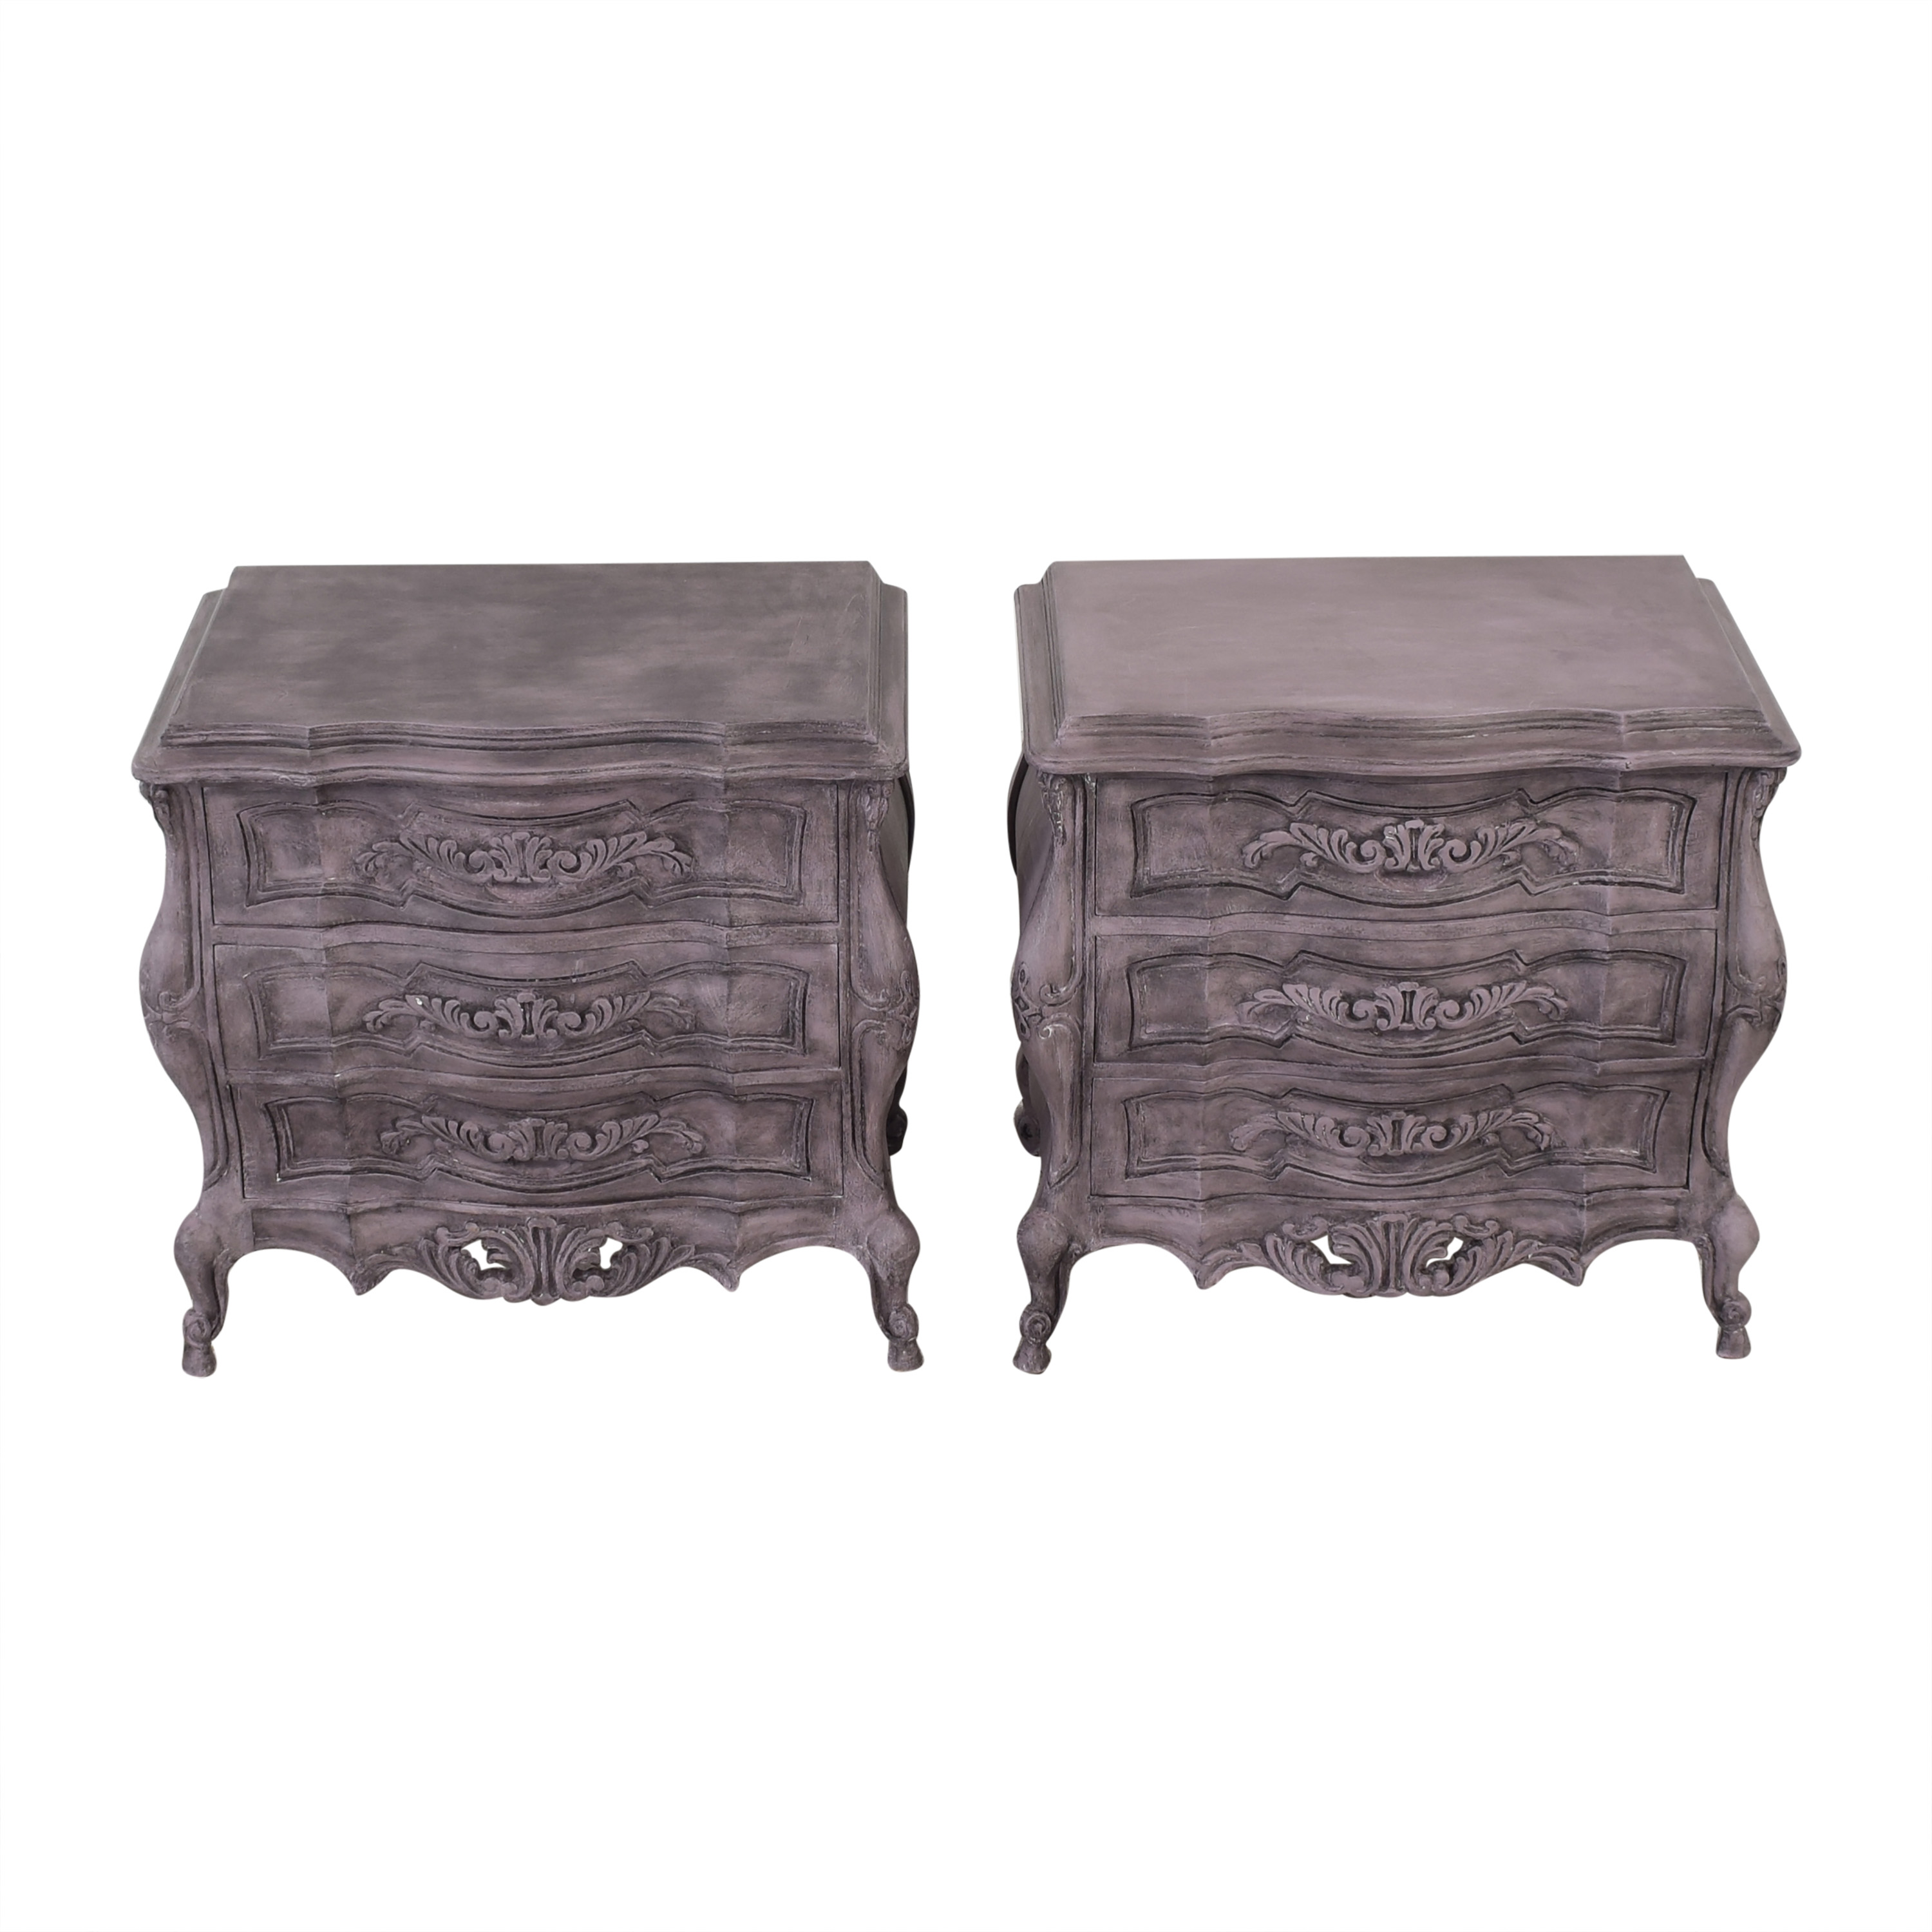 Double Chest Drawers dimensions